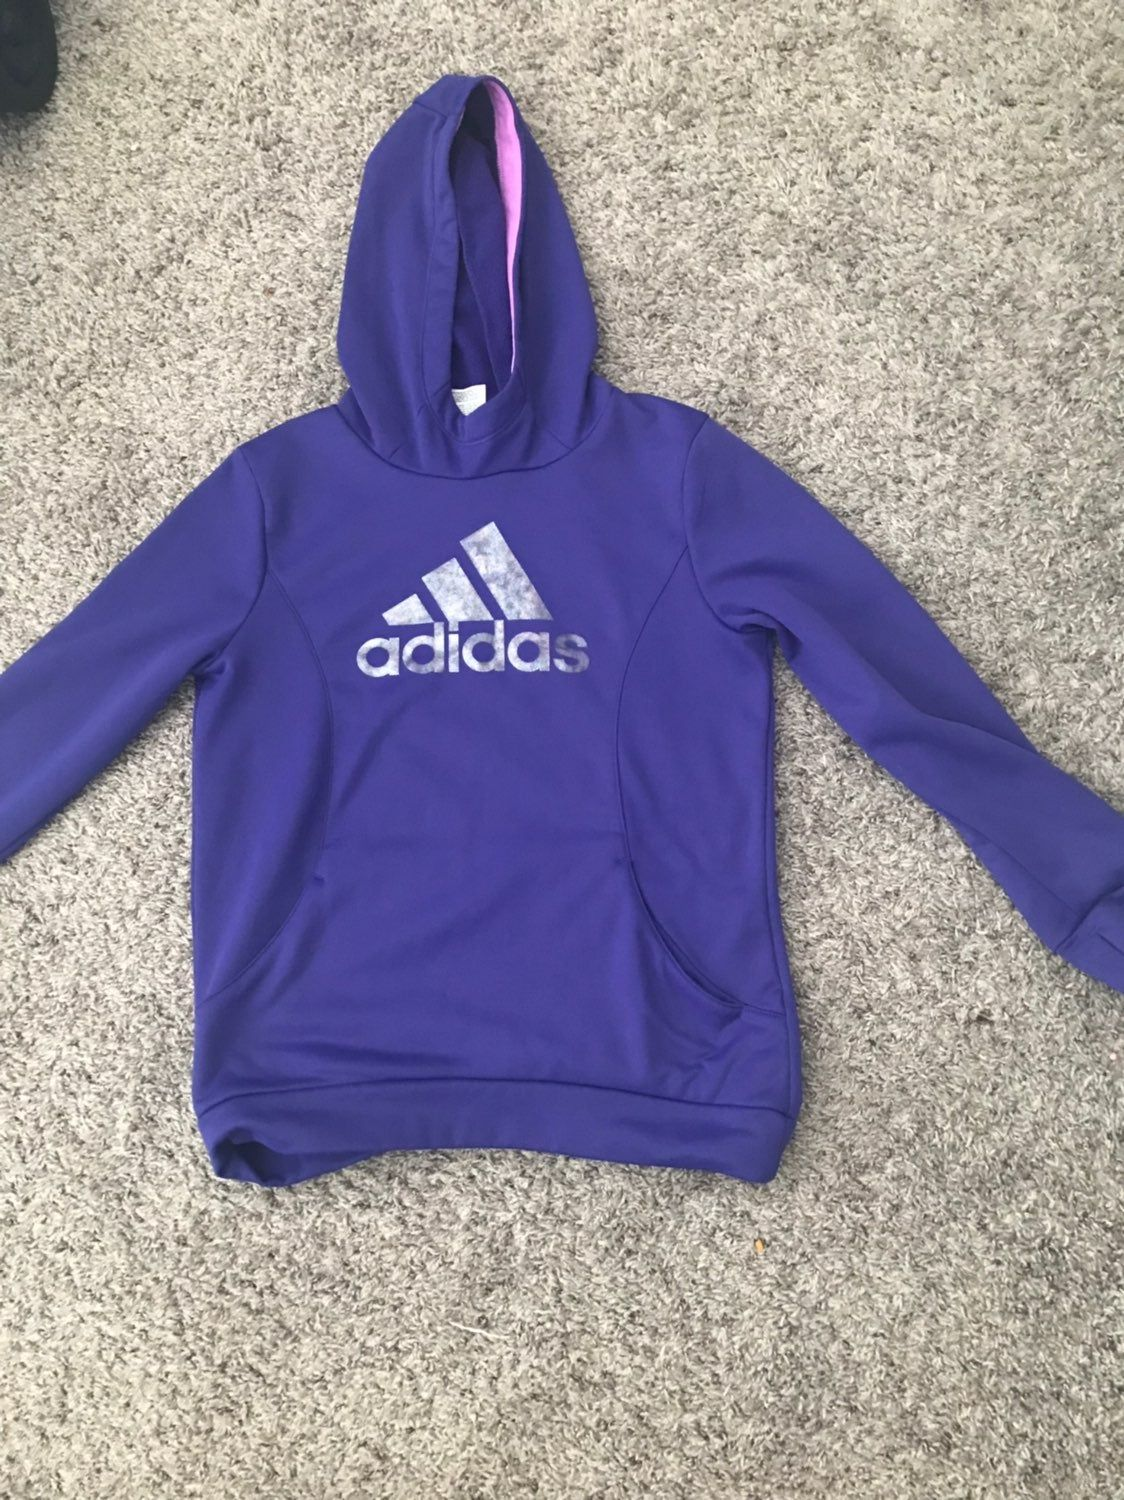 Purple Adidas Hoodie In Great Used Condition Size L 12 14 In Kids Adidas Hoodie Hoodies Adidas Tops [ 1500 x 1124 Pixel ]